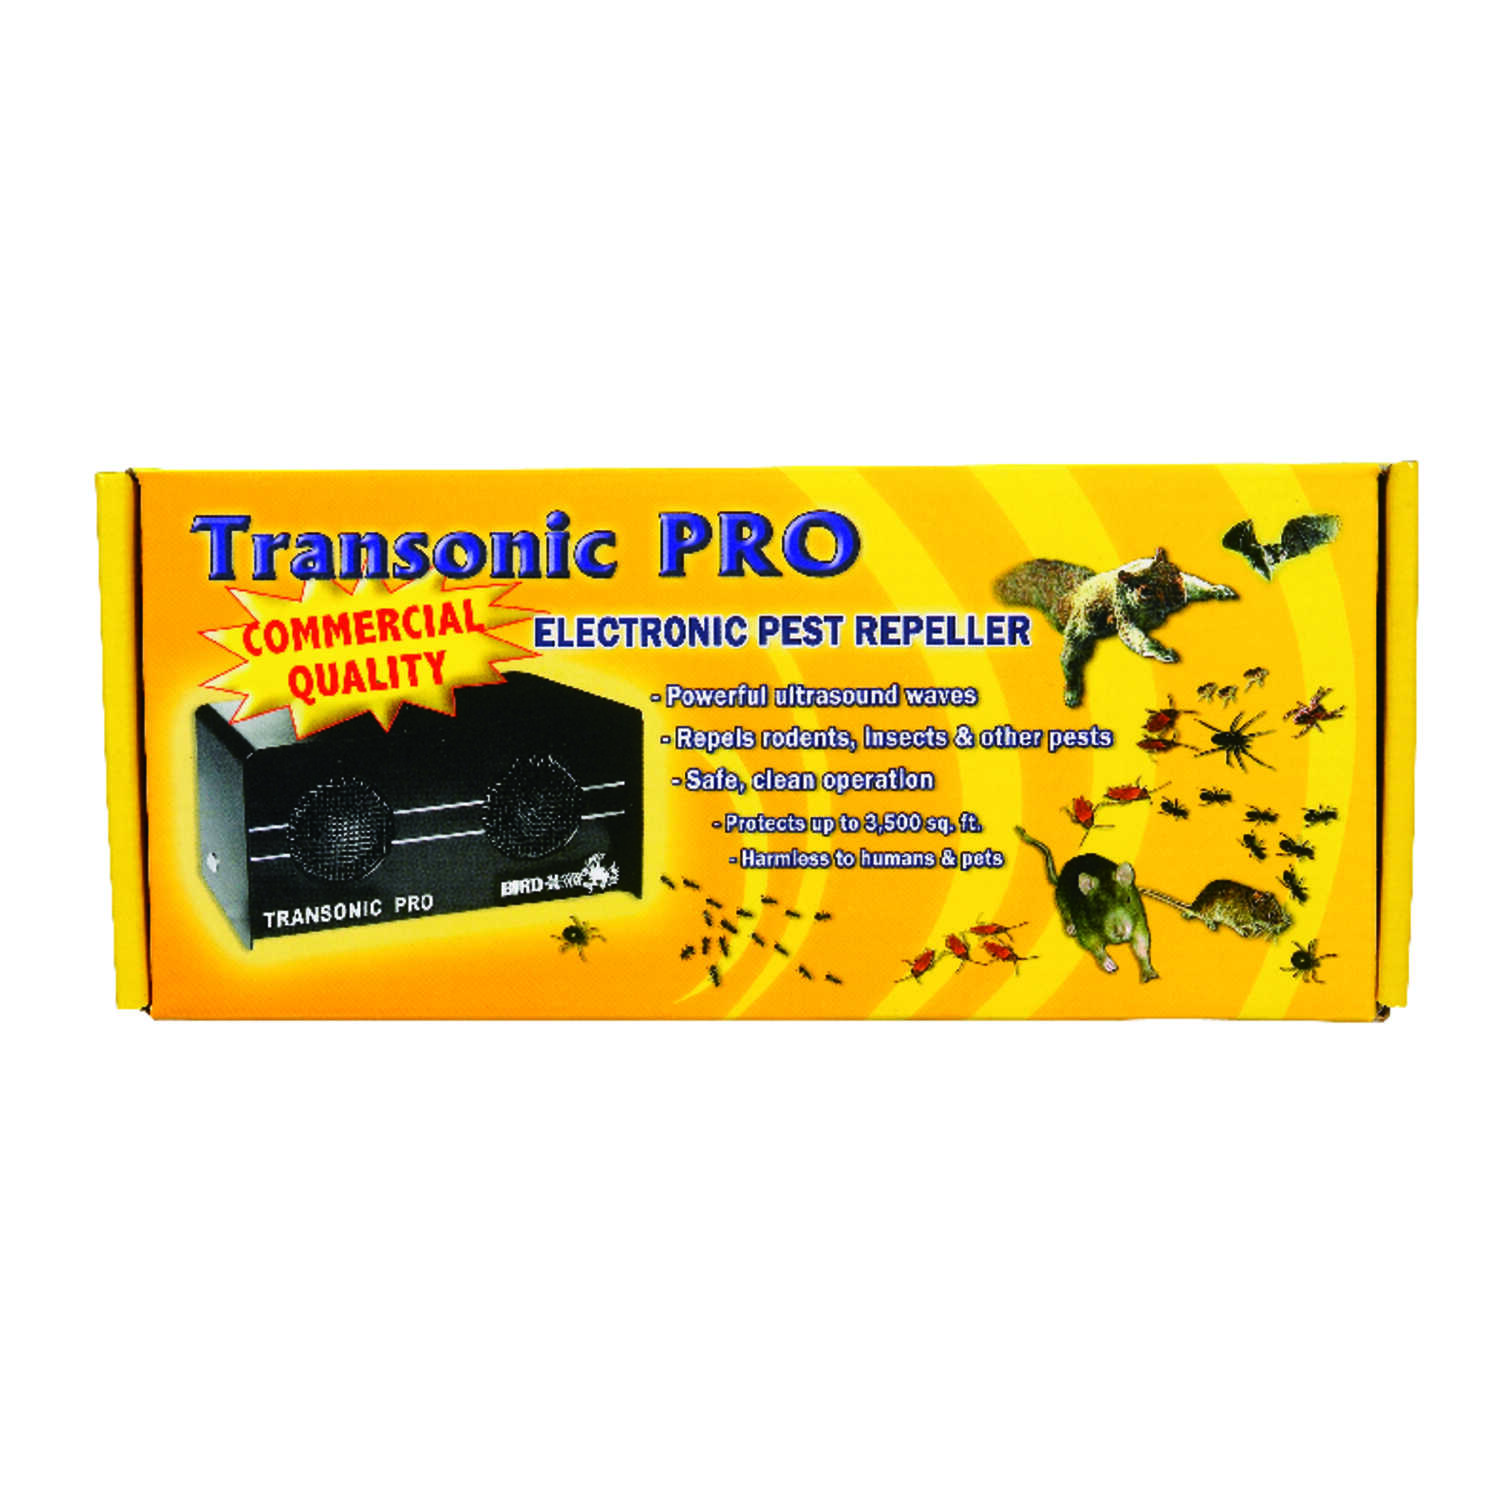 Bird-X  Transonic Pro  Sonic Pest Repeller  For Insects and Small Critters